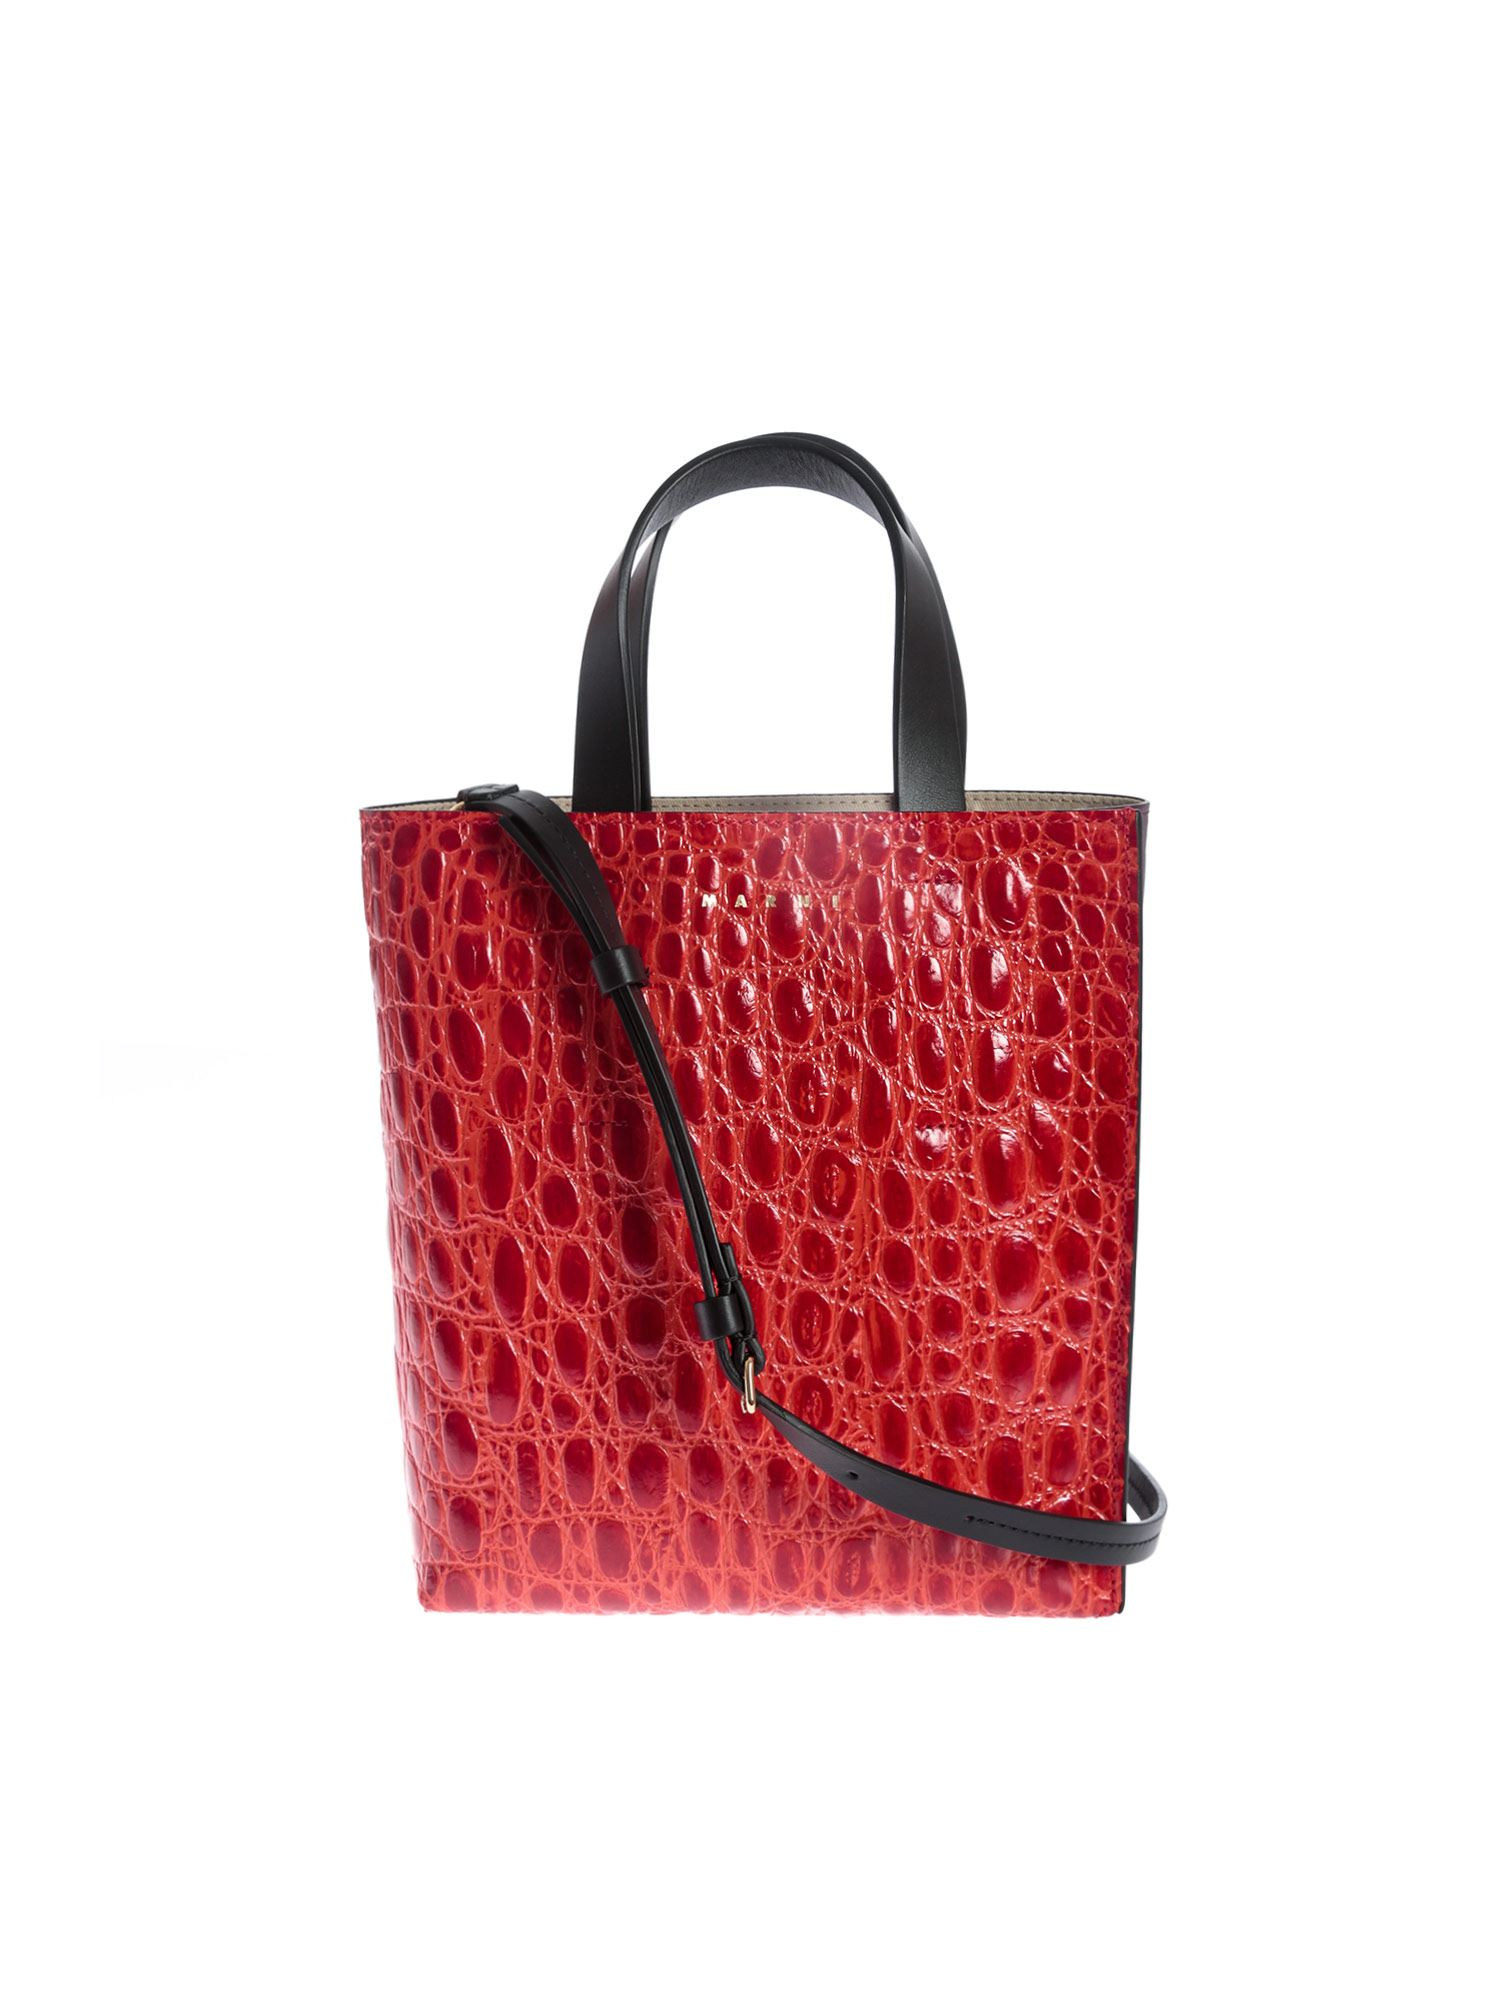 MARNI MUSEO SOFT BAG IN RED